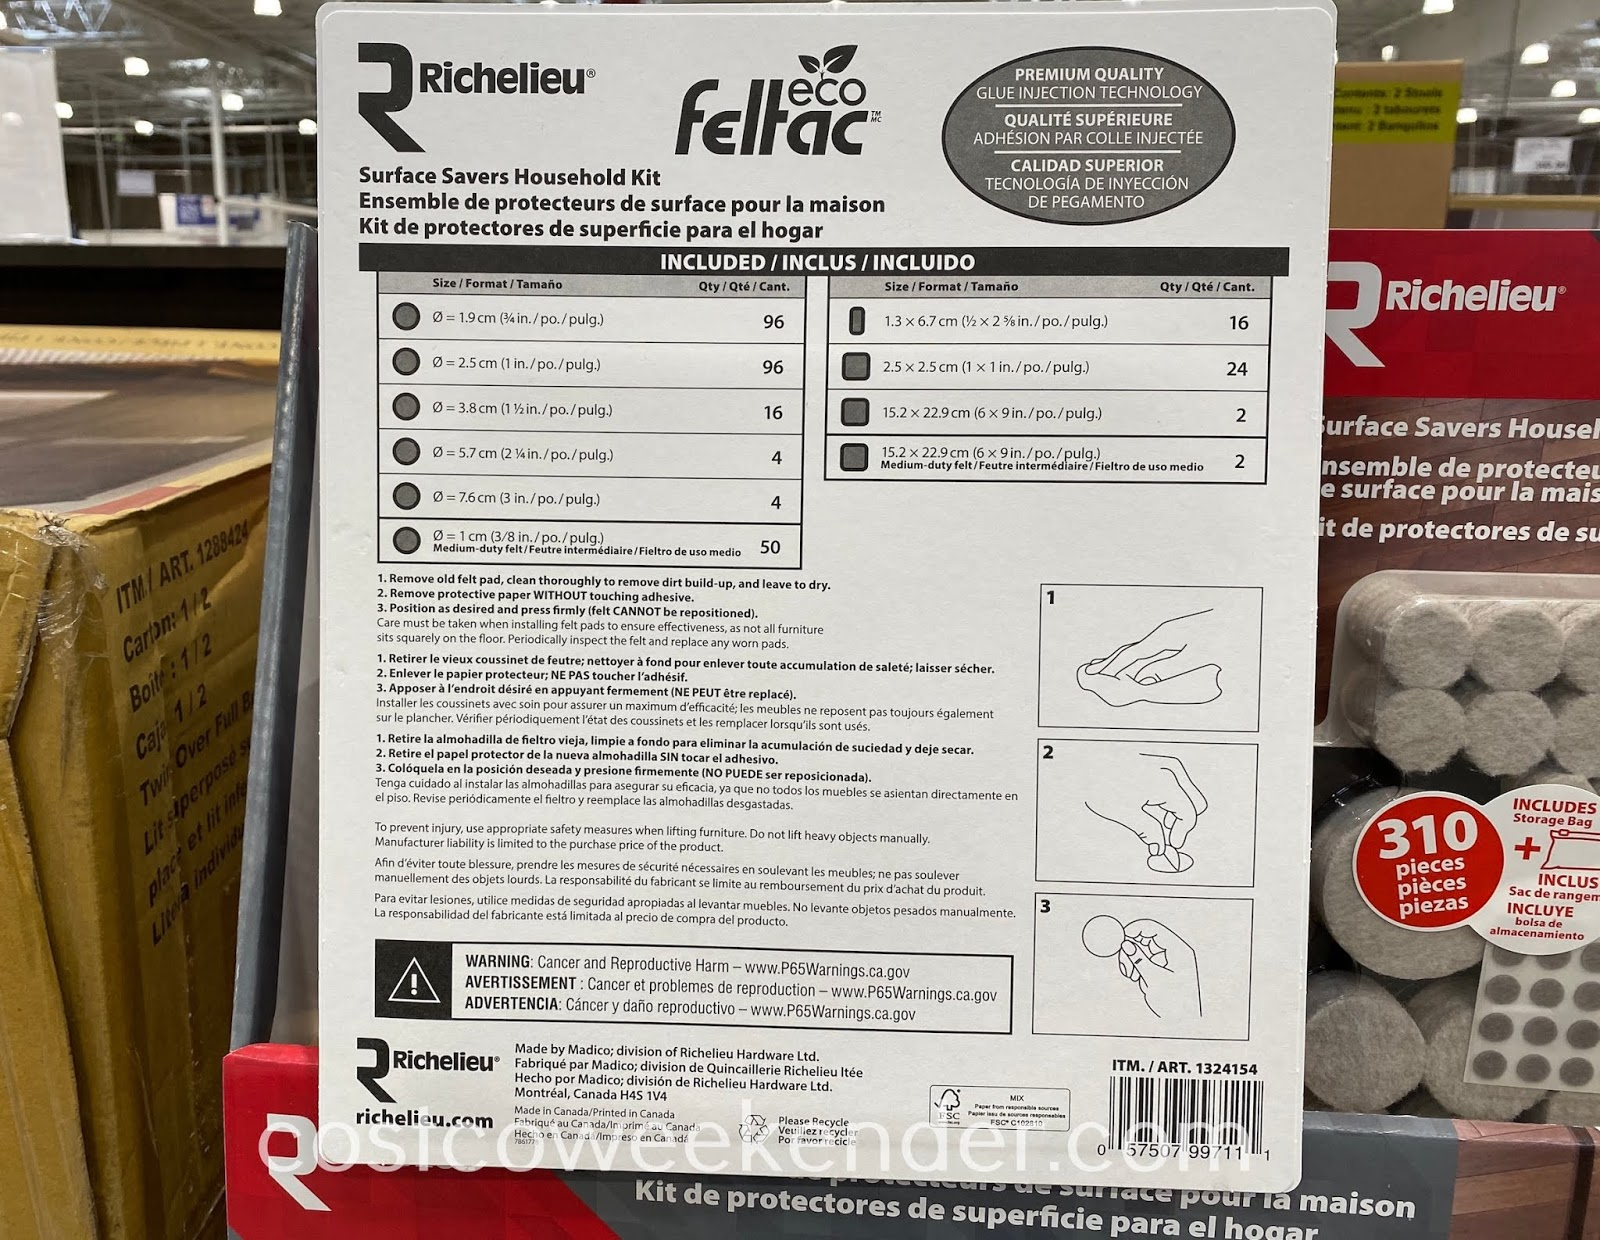 Costco 1050068 - Richelieu Surface Savers Household Kit: essential for your home furniture